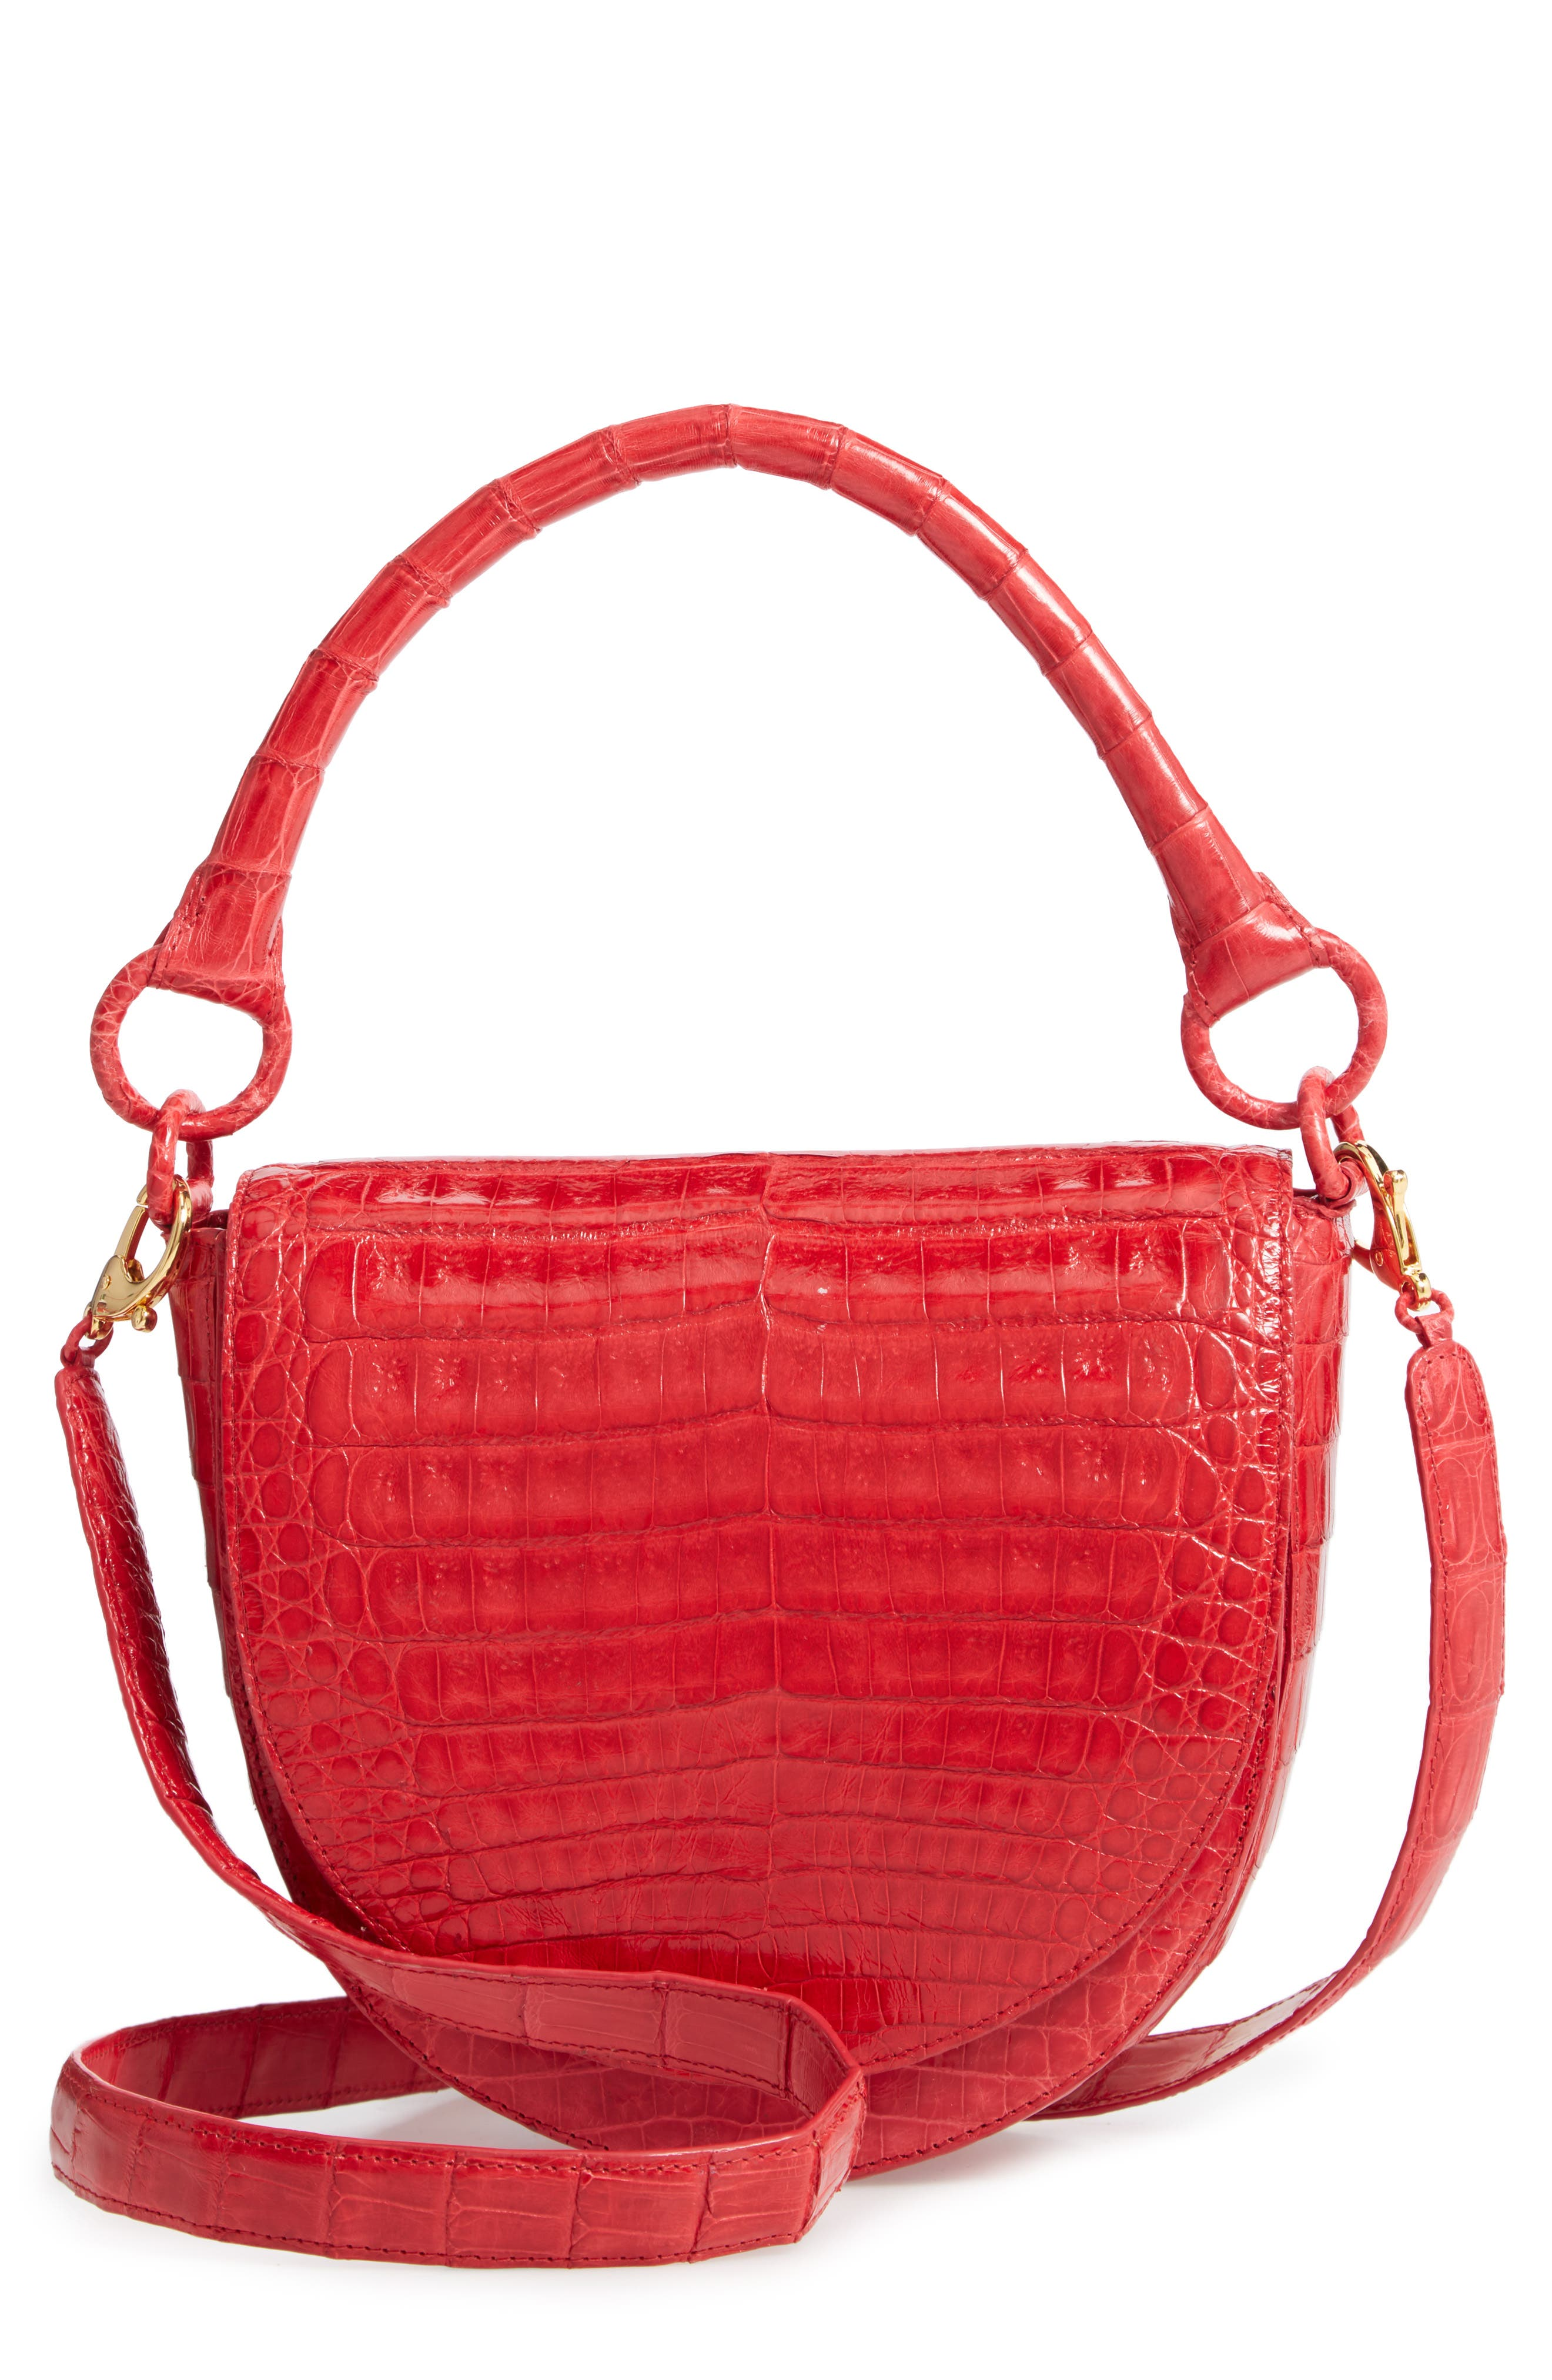 Small Teddy Crocodile Leather Crossbody Bag, Main, color, RED SHINY